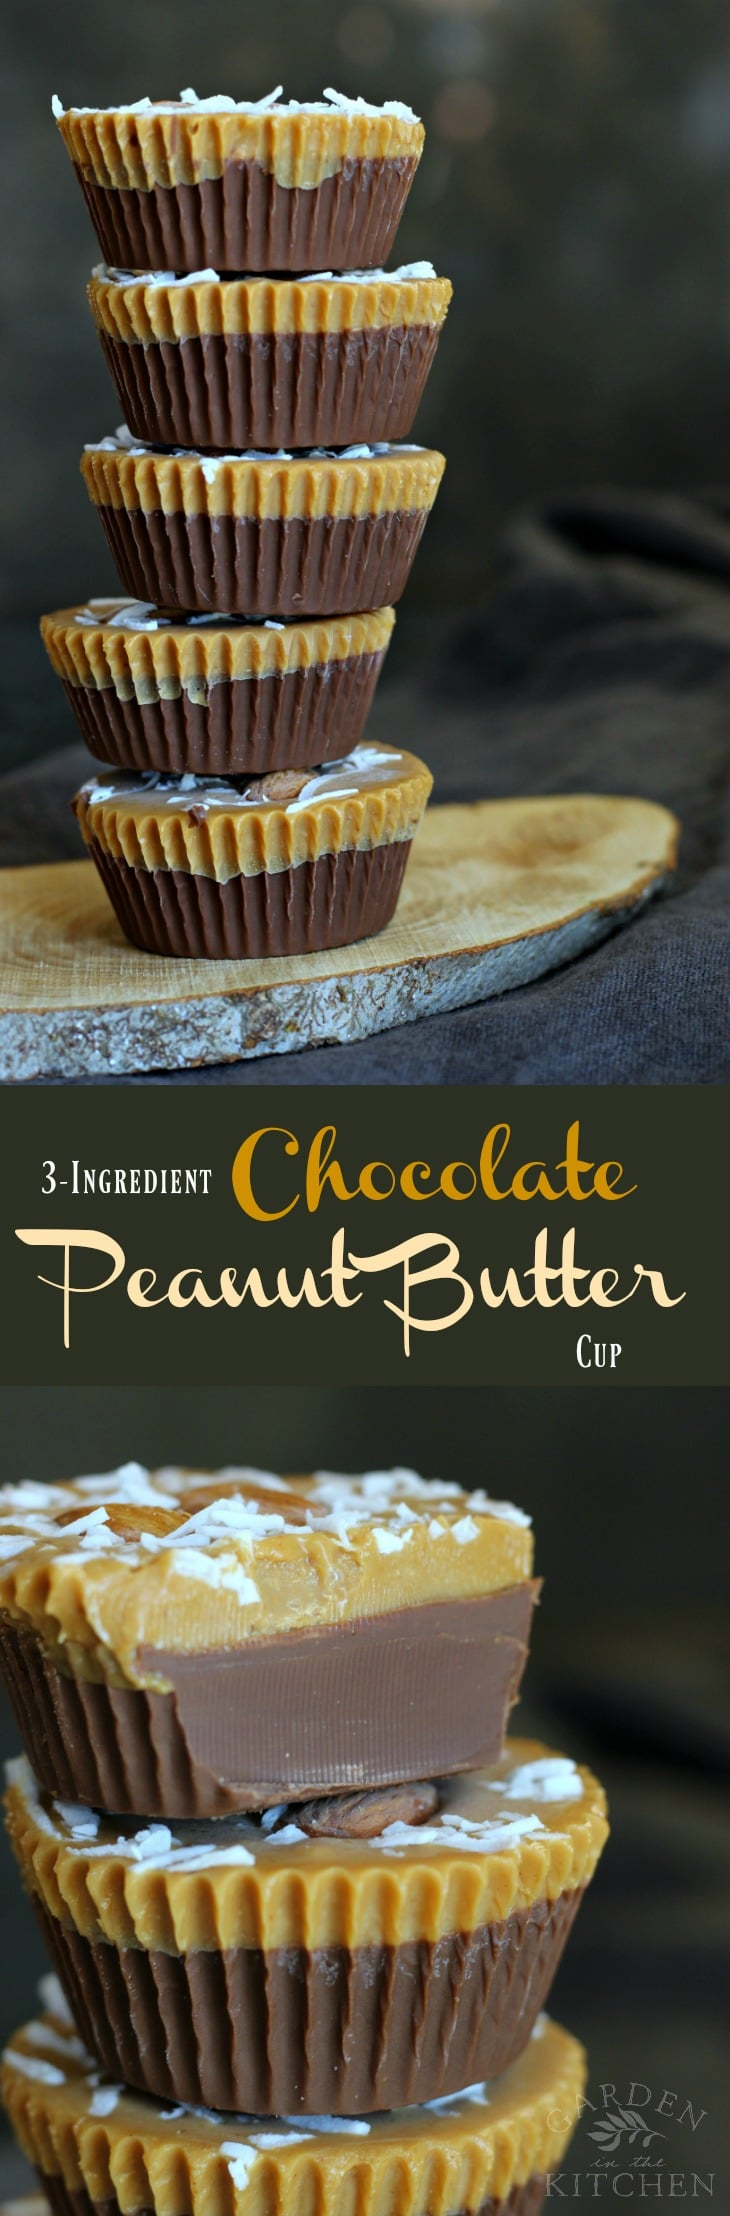 Delicious allergy friendly Vegan and Gluten-free Chocolate Peanut Butter Cup | gardeninthekitchen.com